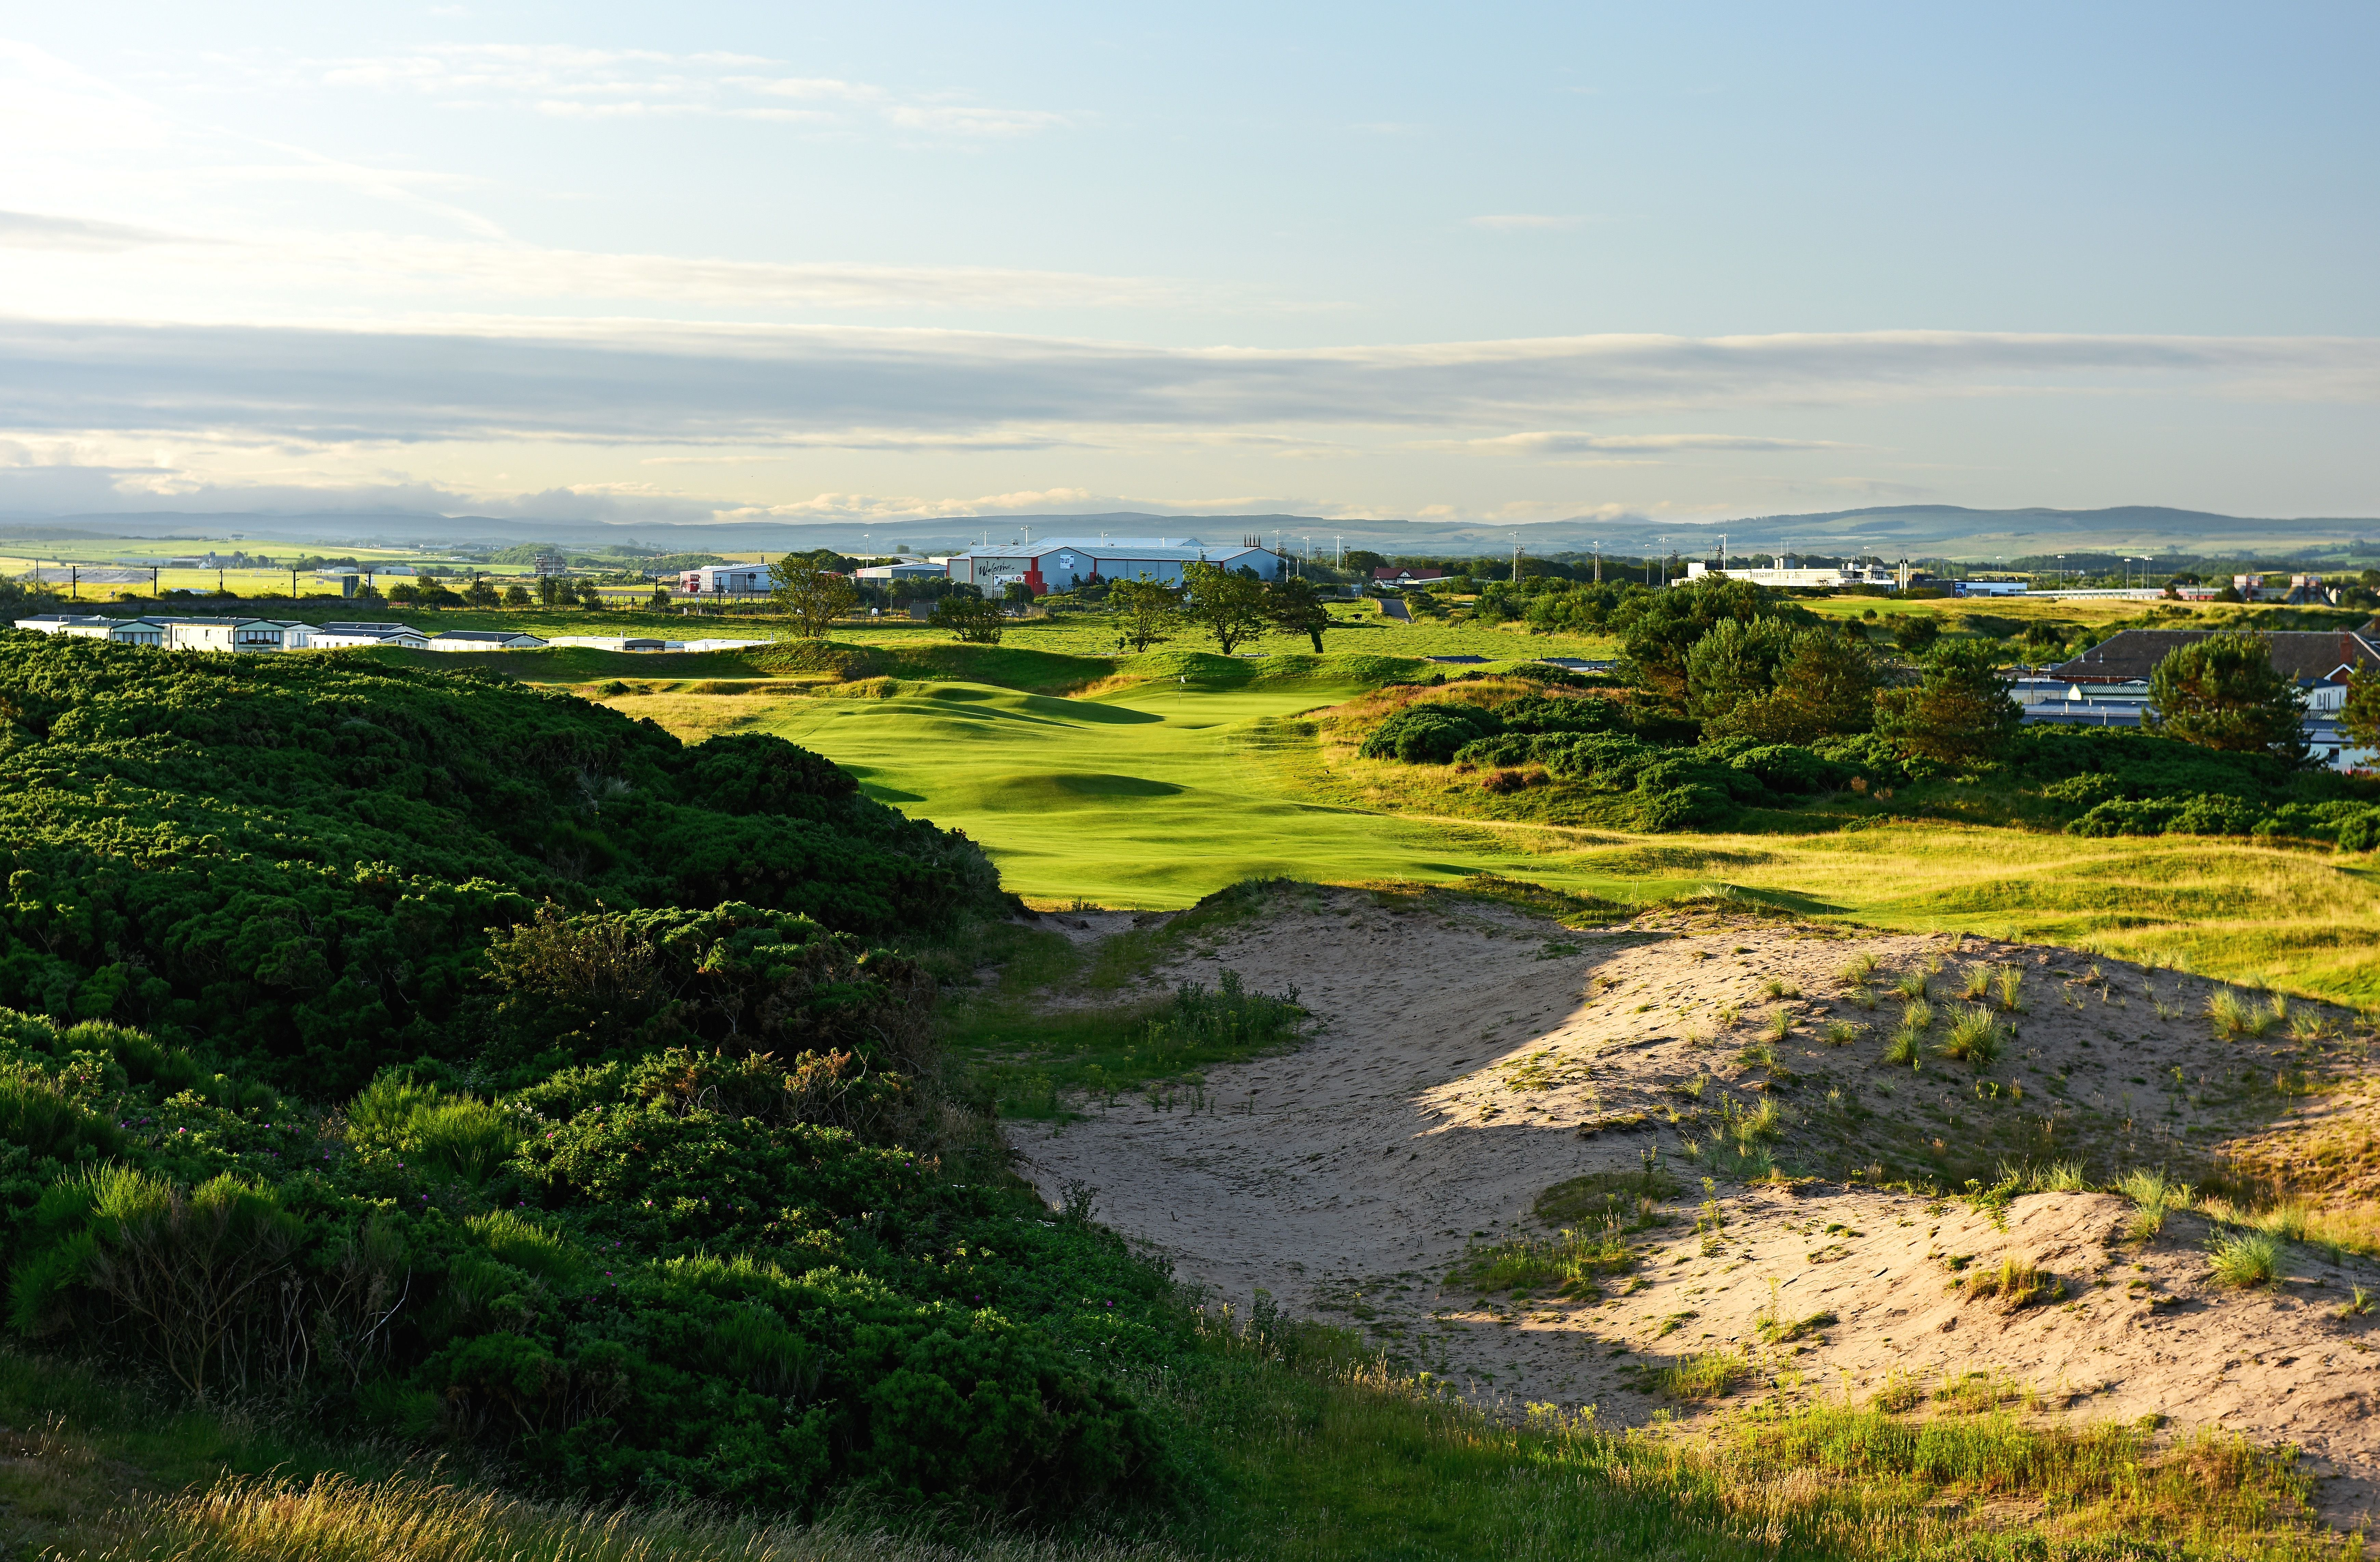 The 423 yards par 4, 9th hole, The Monk, on the Old Course at Royal Troon